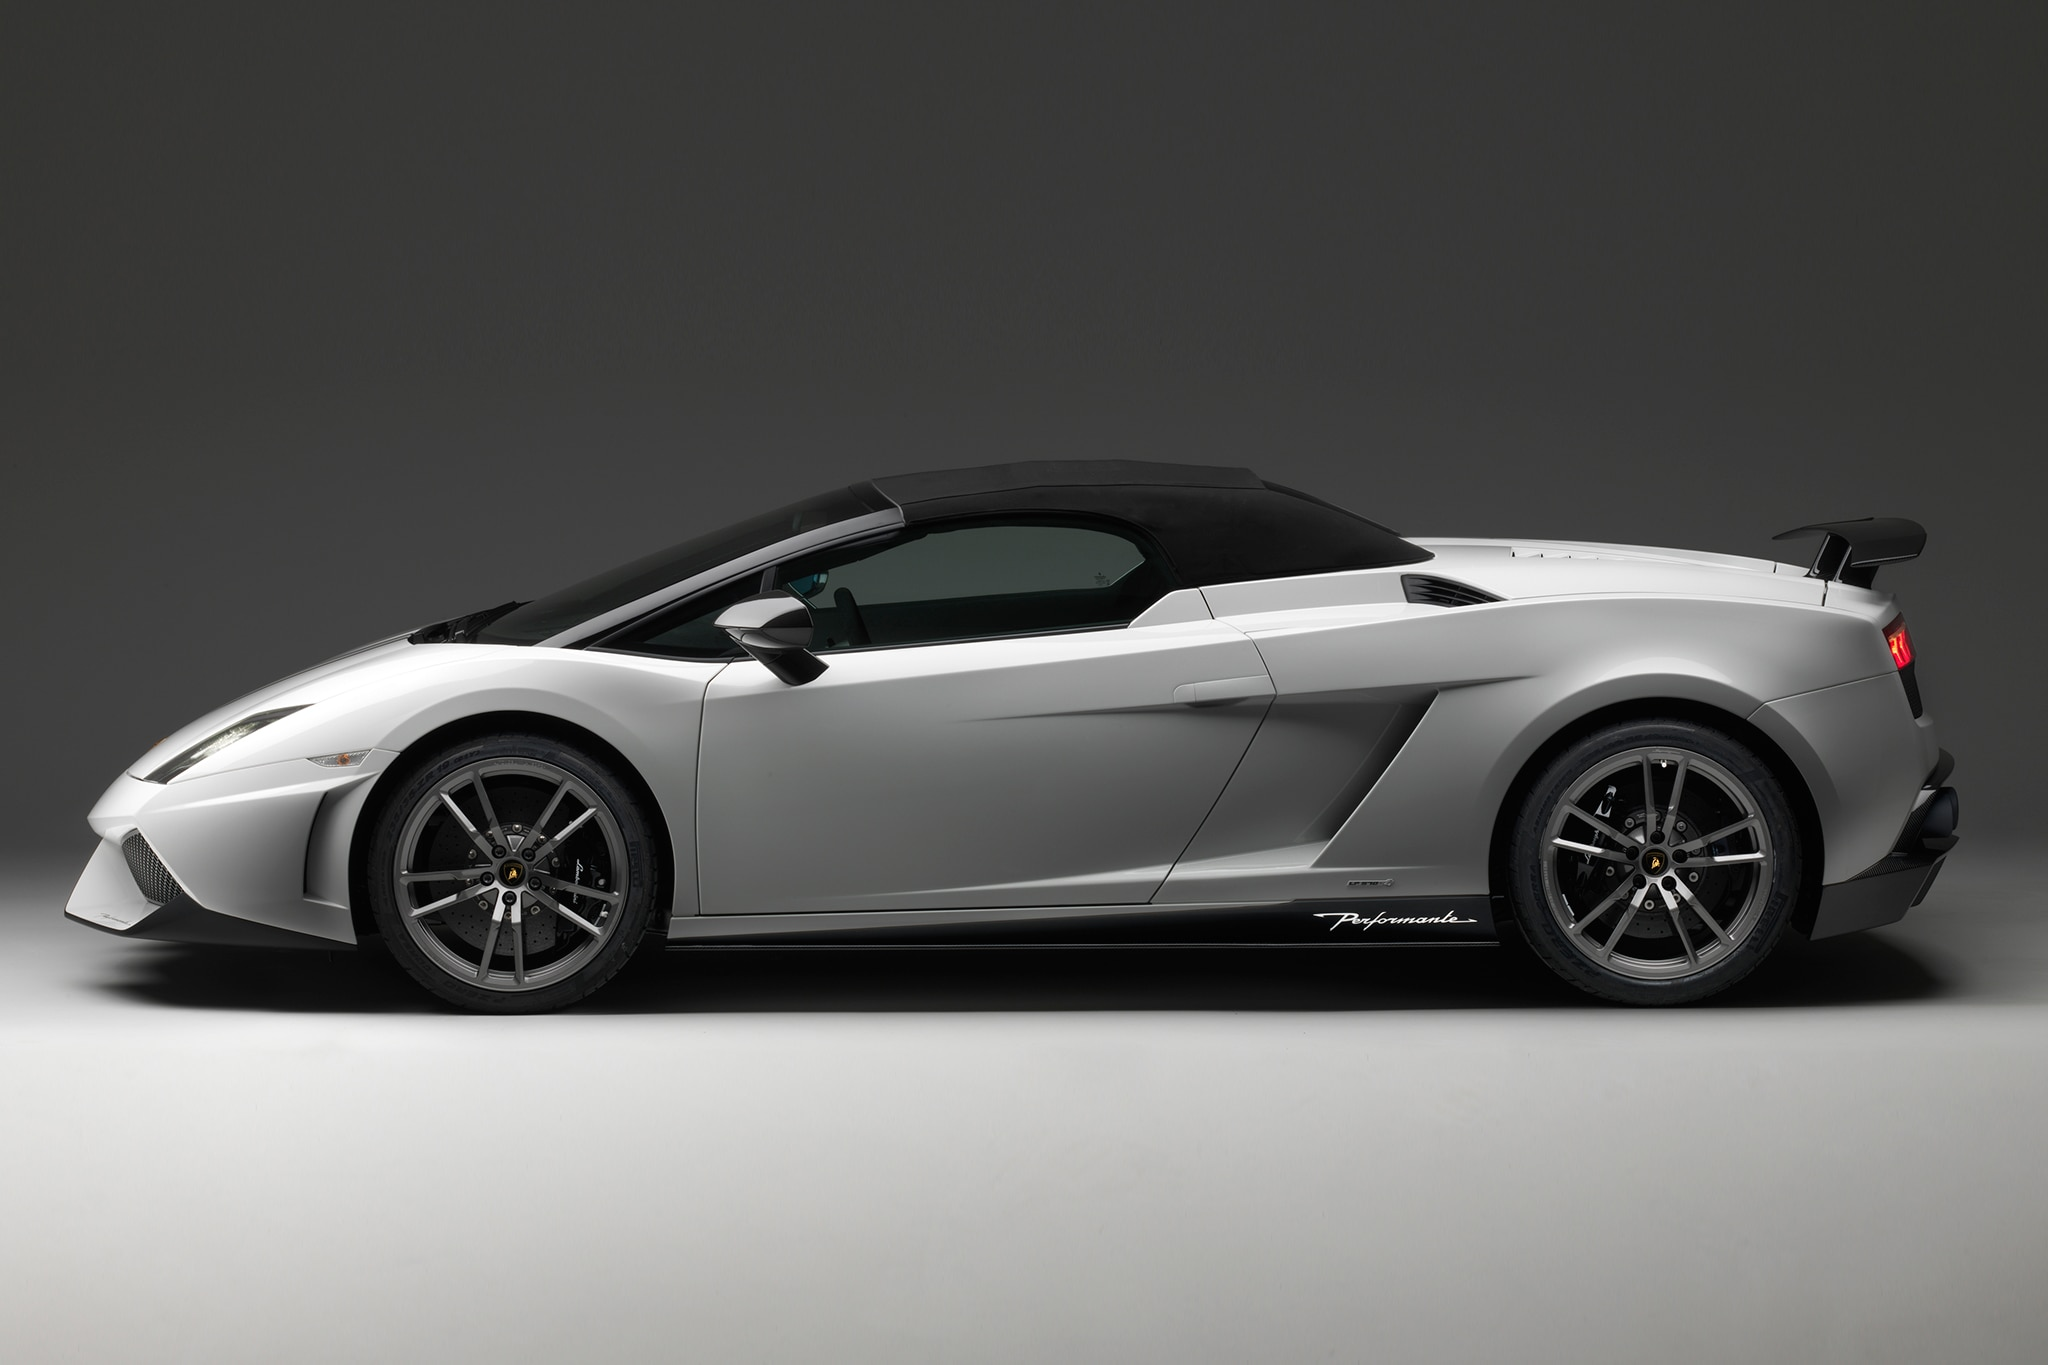 lamborghini gallardo - photo #29